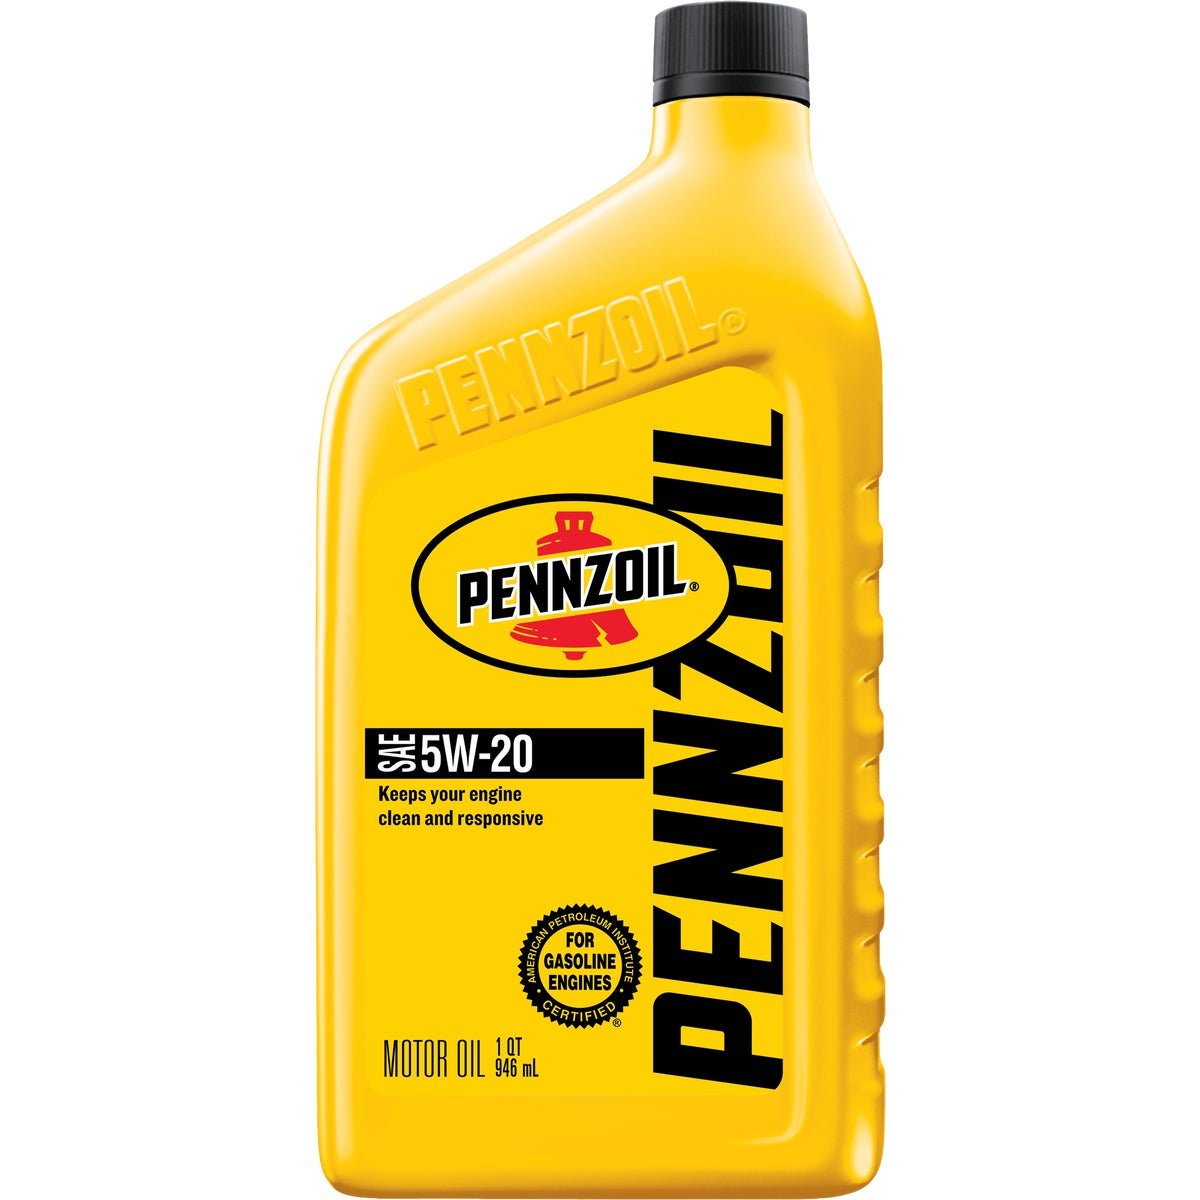 5W20 PENNZOIL MOTOR OIL - 550022779 by Sopus Products/ Lub